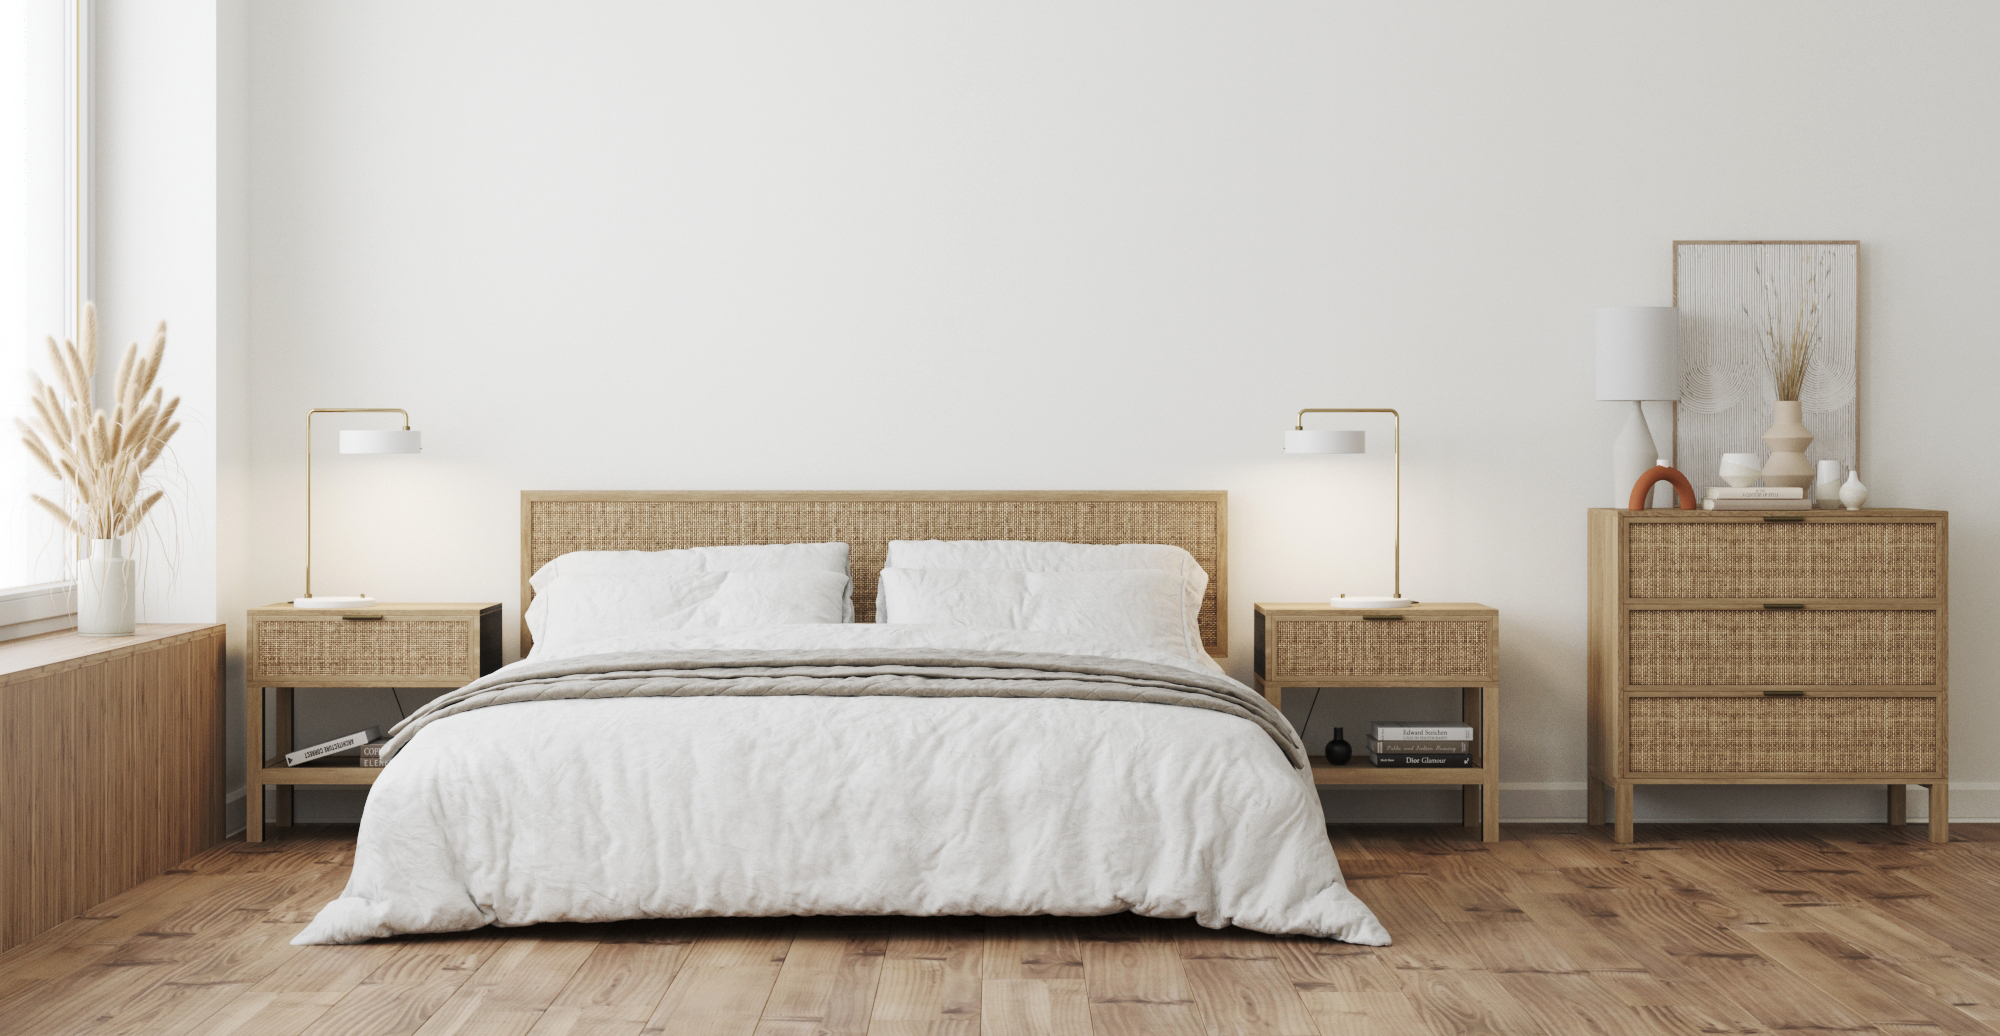 Brosa Caledonia Rattan Queen Size Bed Frame styled in coastal bedroom